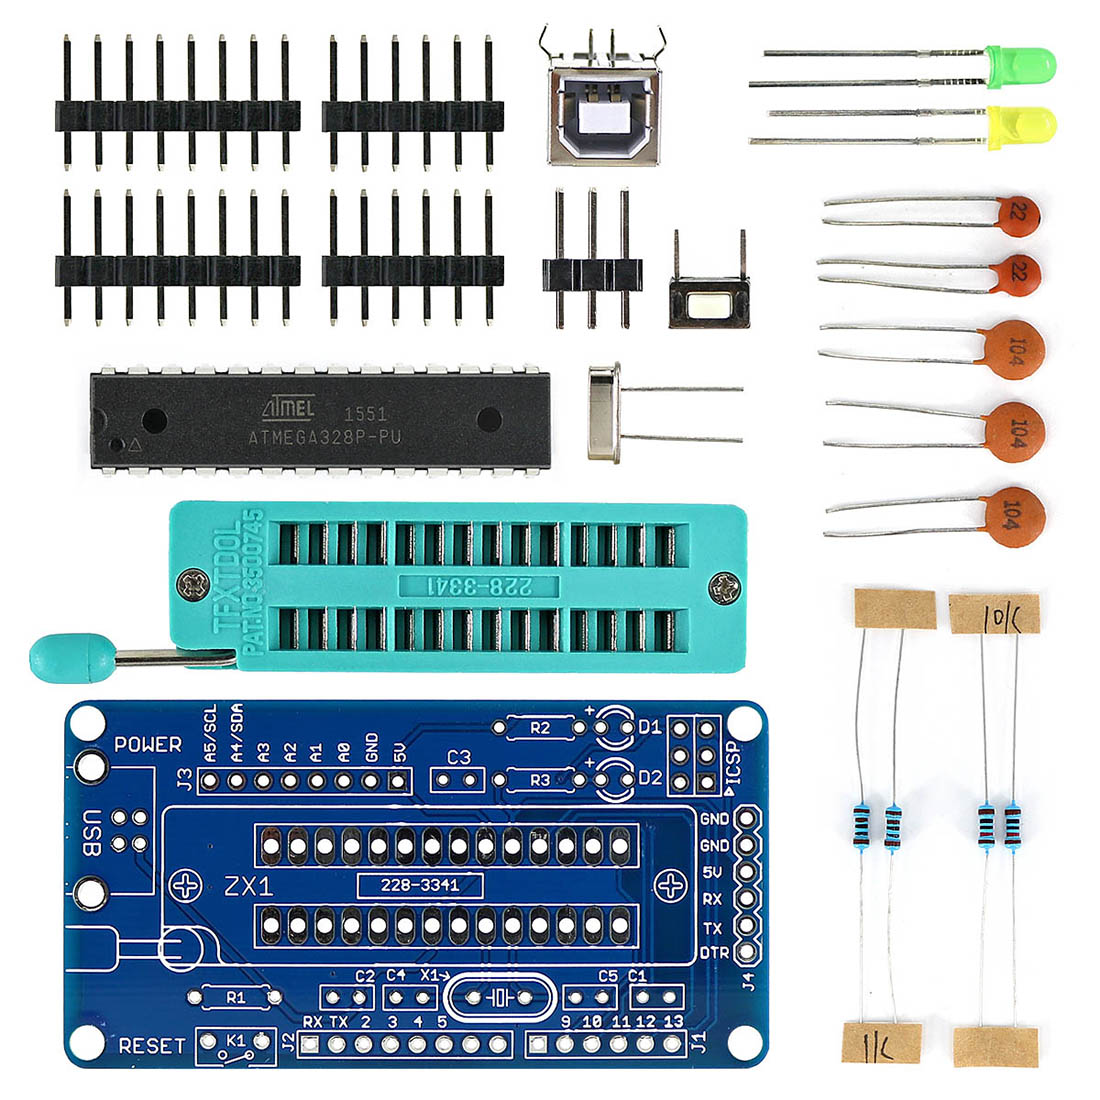 MODIKER Diy Programmable Kit For UNO R3 For ATmega328P Development Board DIY Soldering Parts With Soldering Tutorial For Arduino